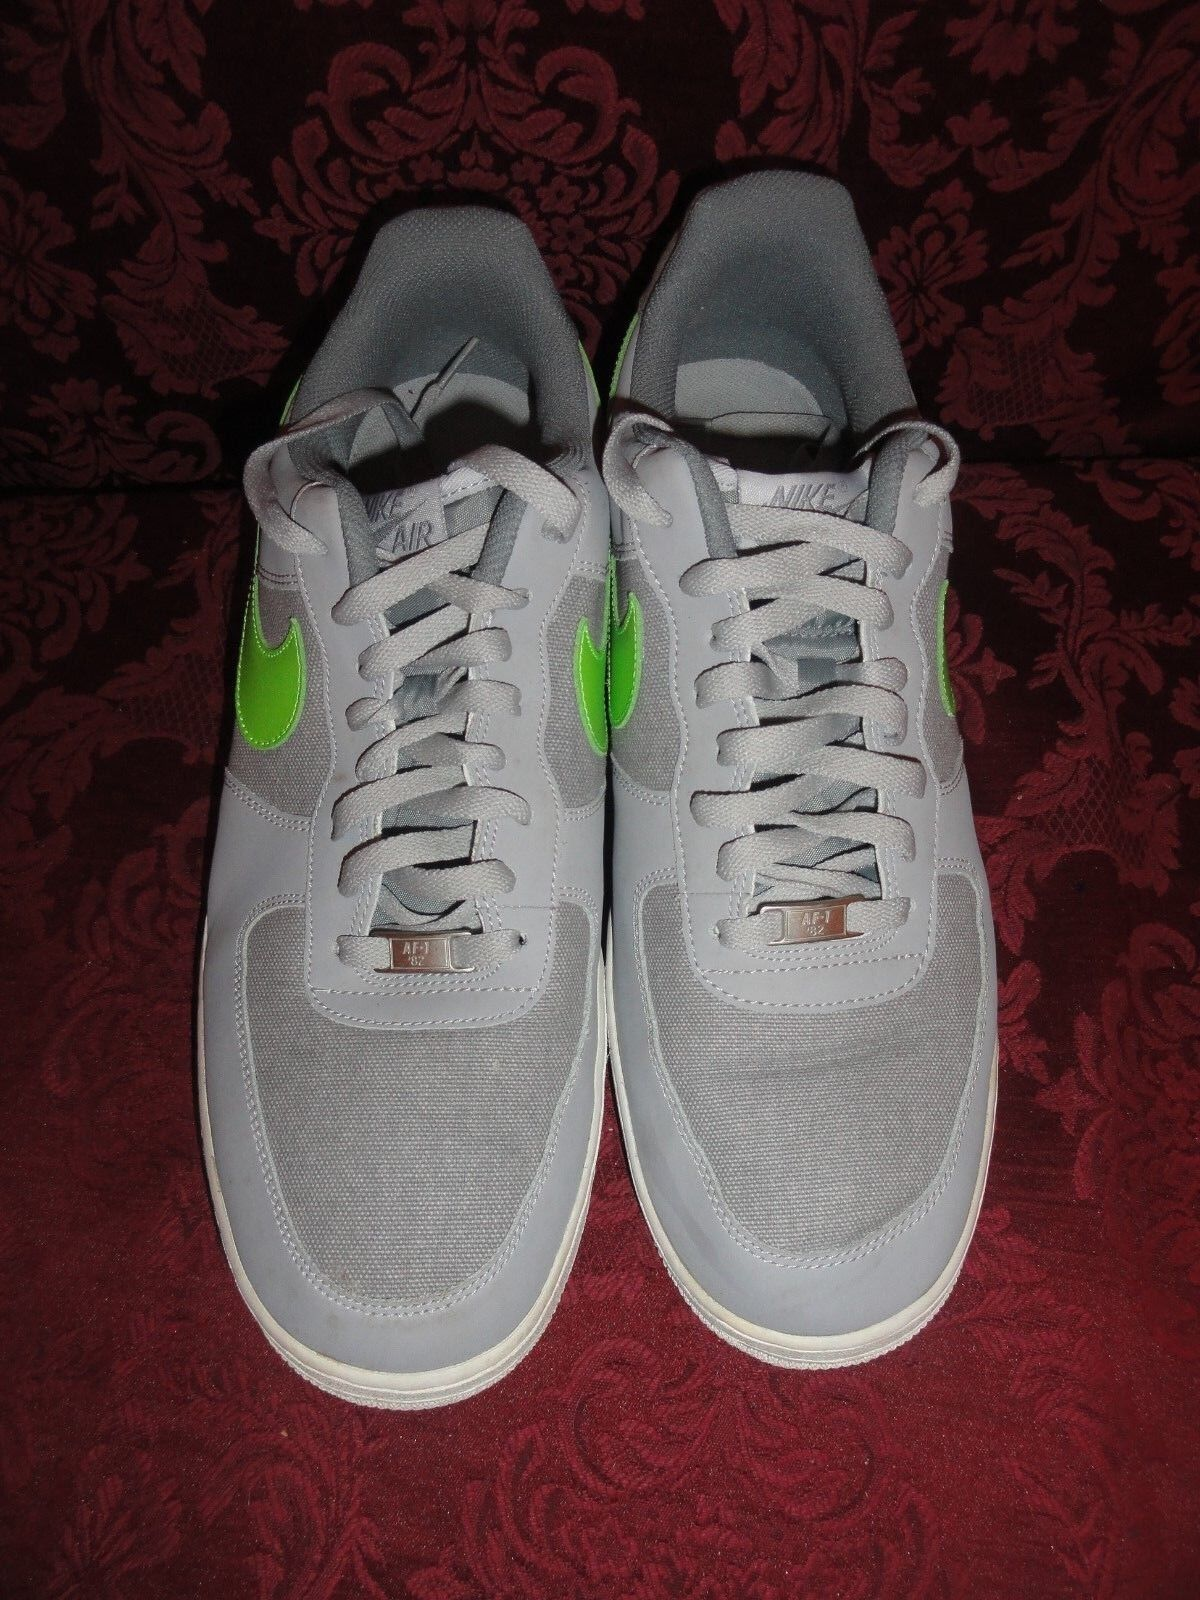 Nike Air Force s 1 AF1 82 'low Top Men' s Force ~ 488298 009 Wolf Gris / Verde sz 14 barato y hermoso moda 3ff6ca